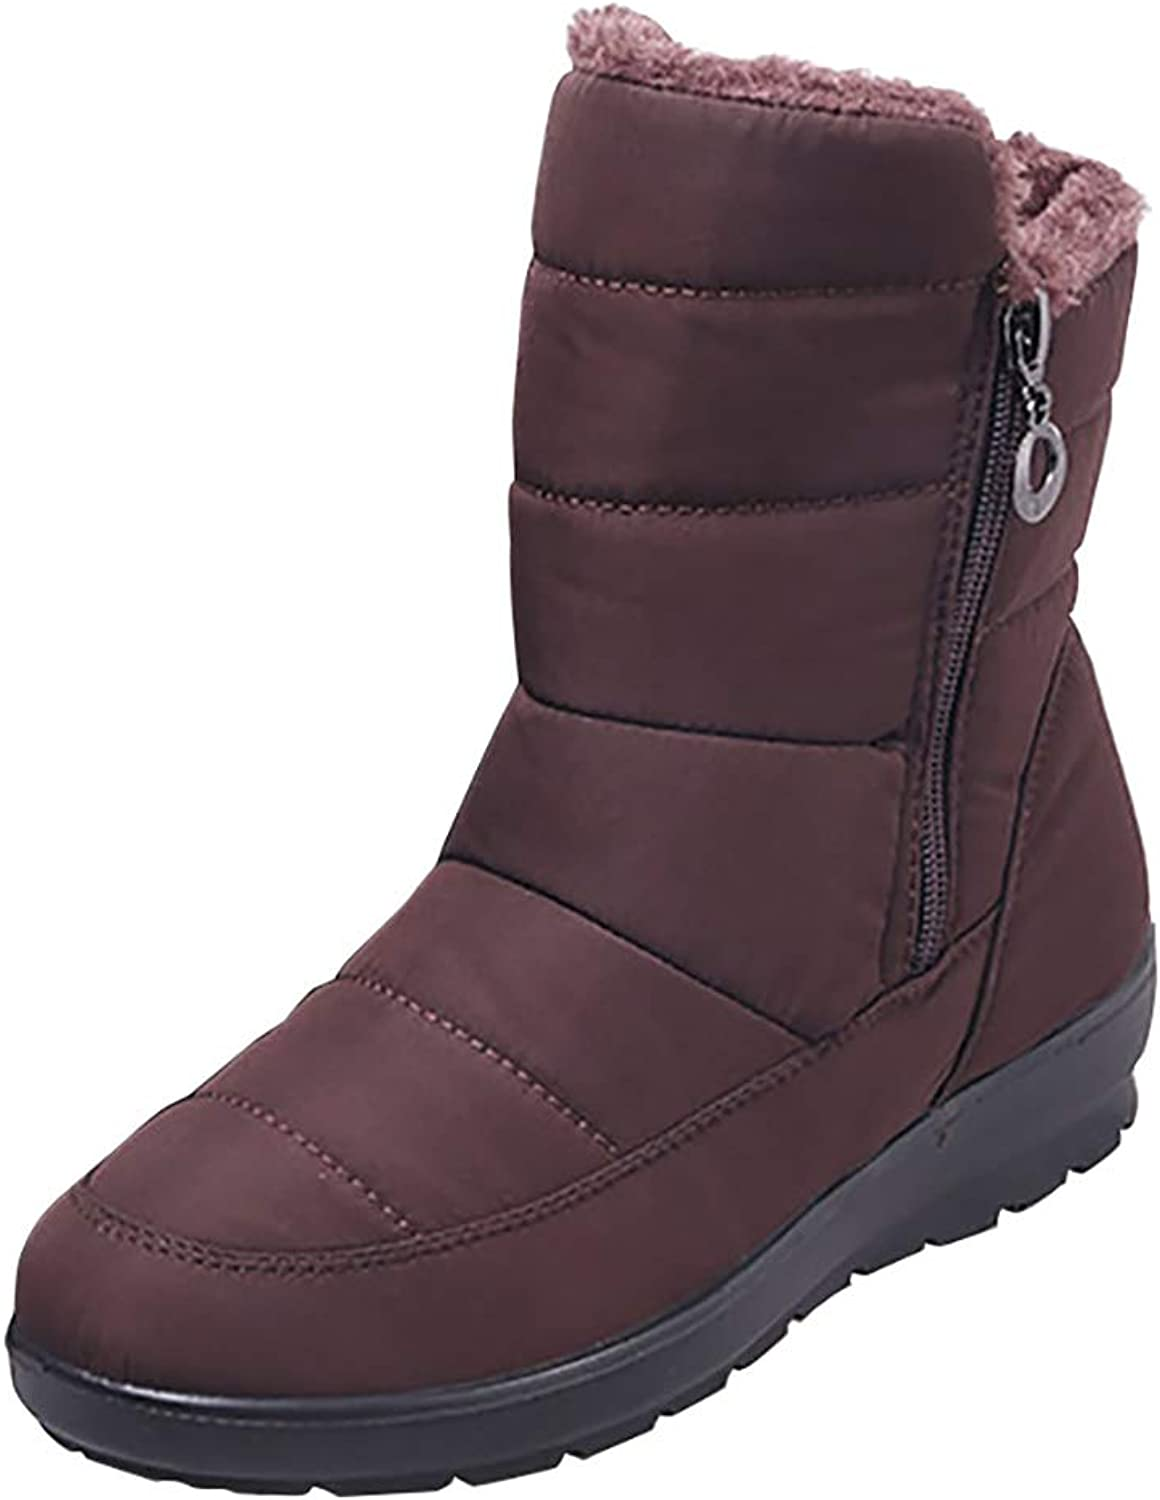 Odema Women's Winter Mid-Calf Snow Boots Fur Lined Outdoor Waterproof Sneakers